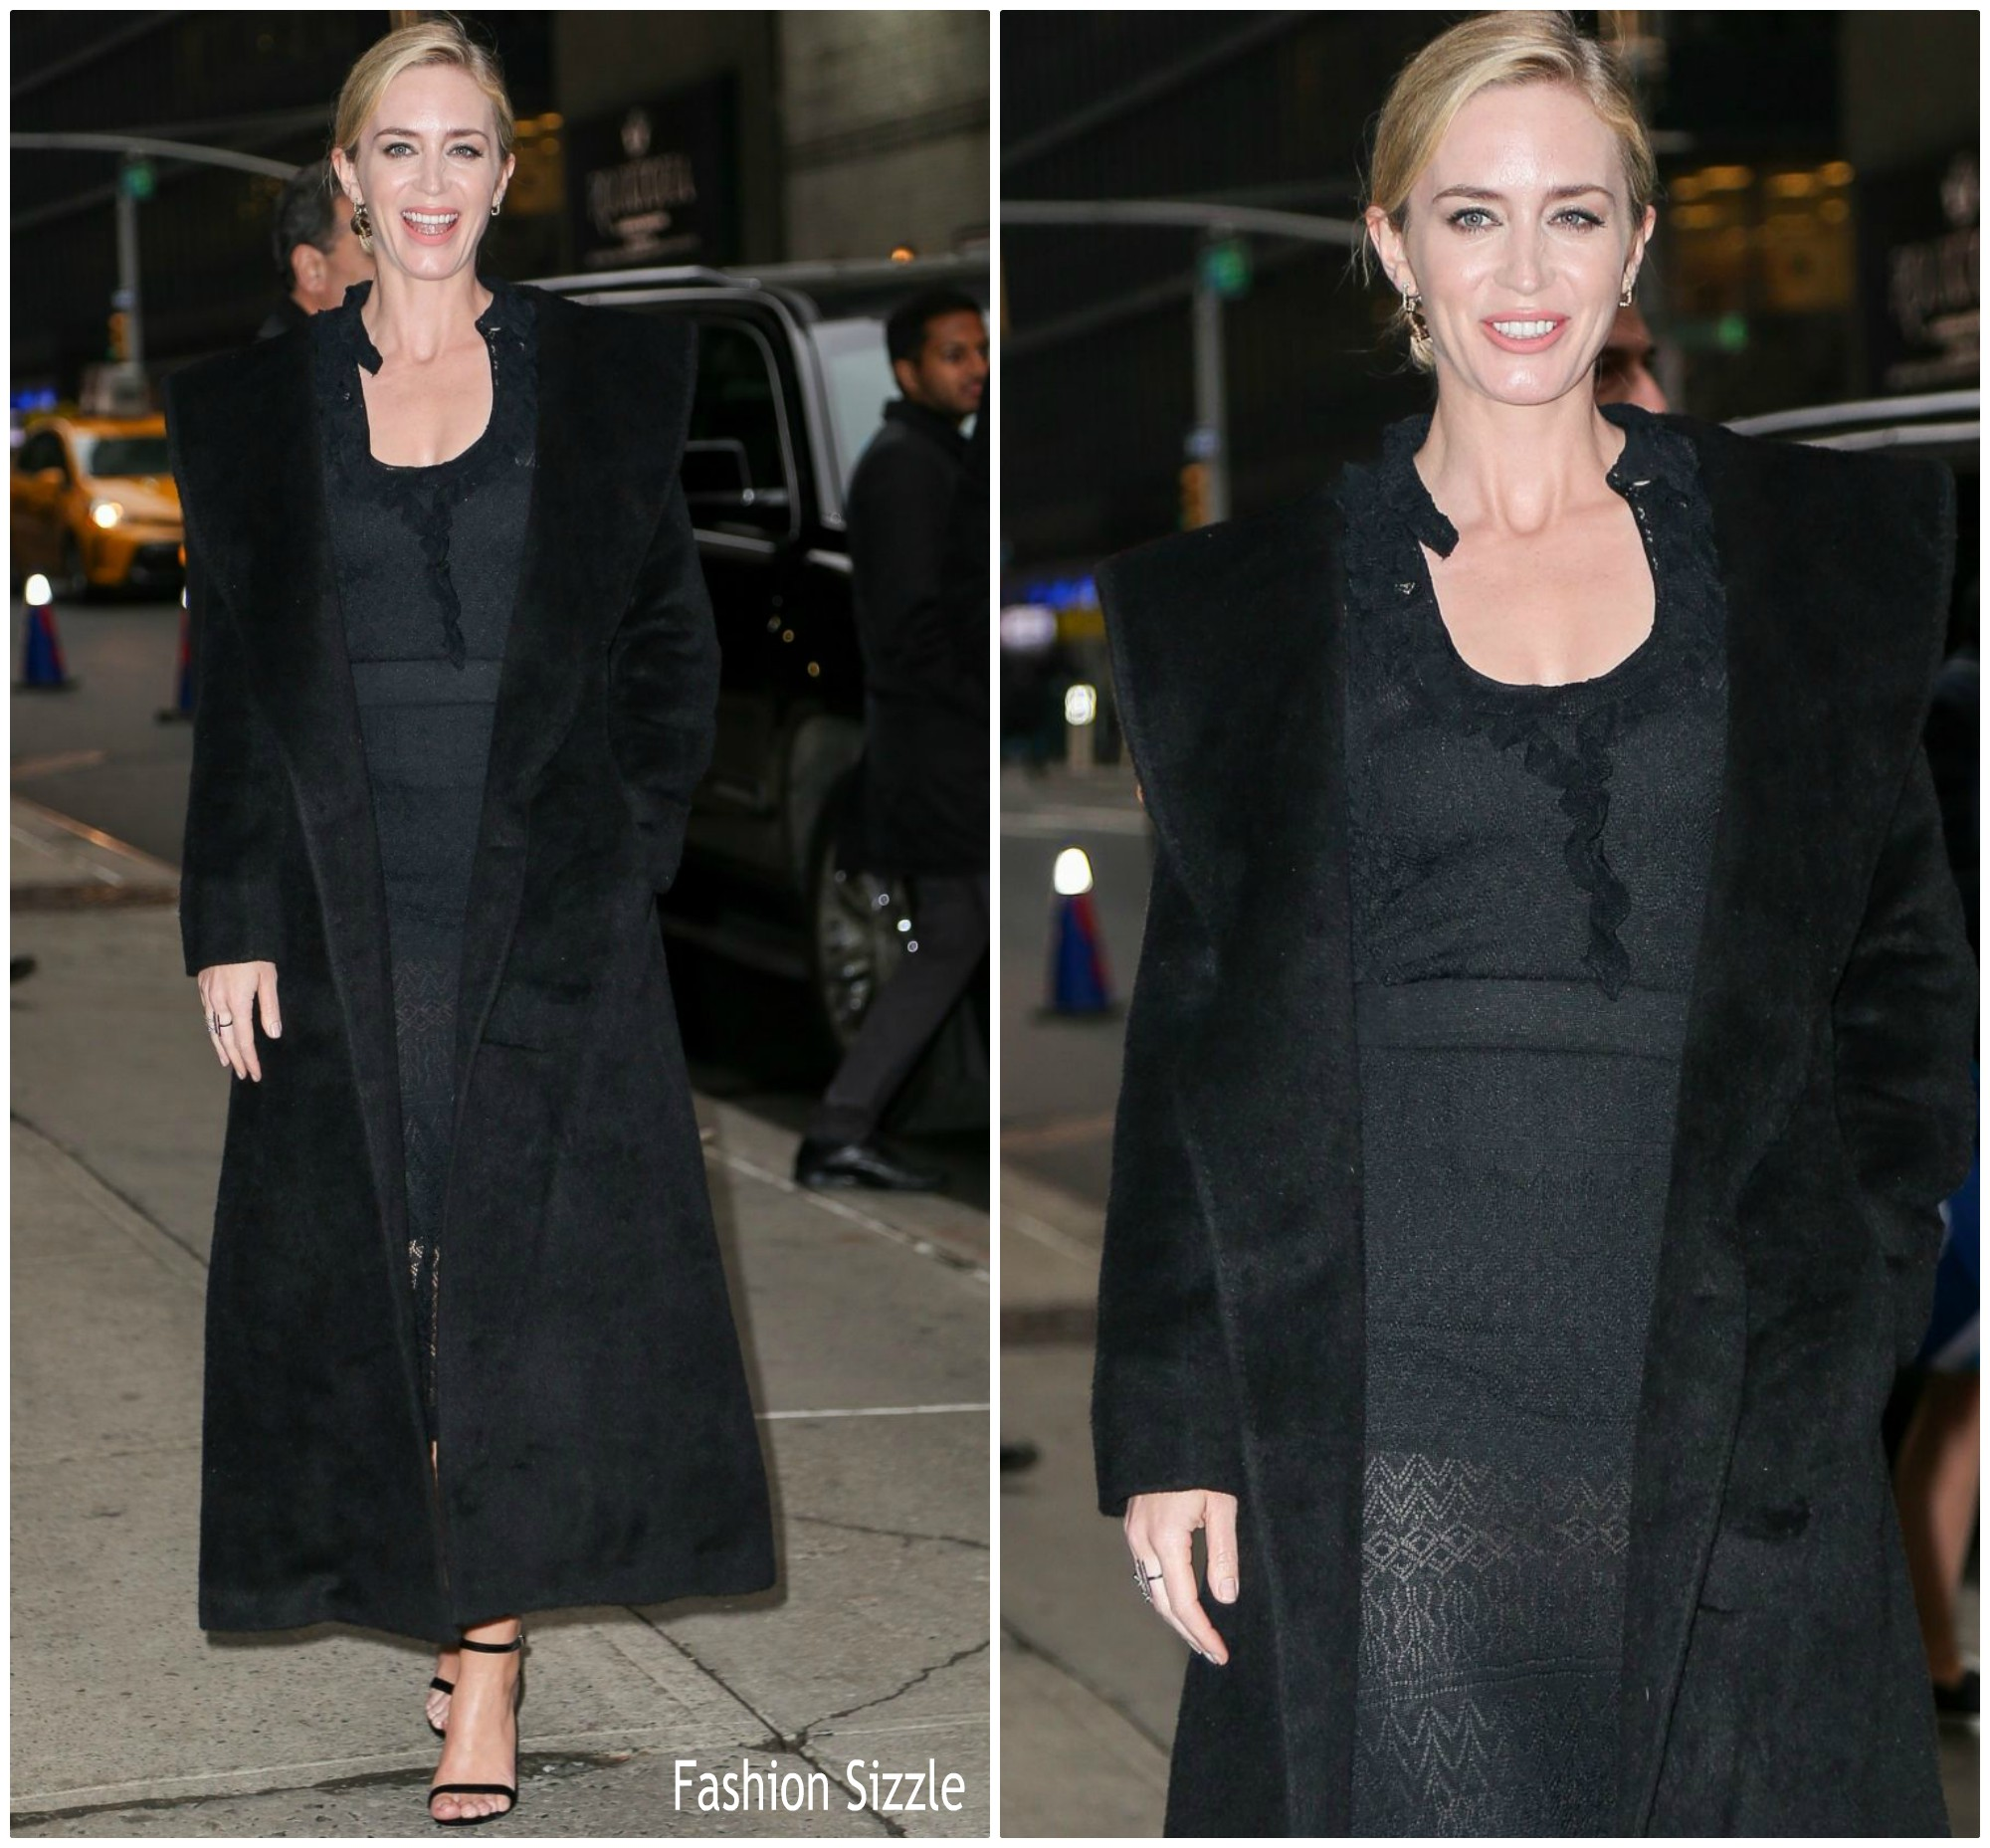 emily-blunt-in-altuzarra-the-late-show-with-stephen-colbert